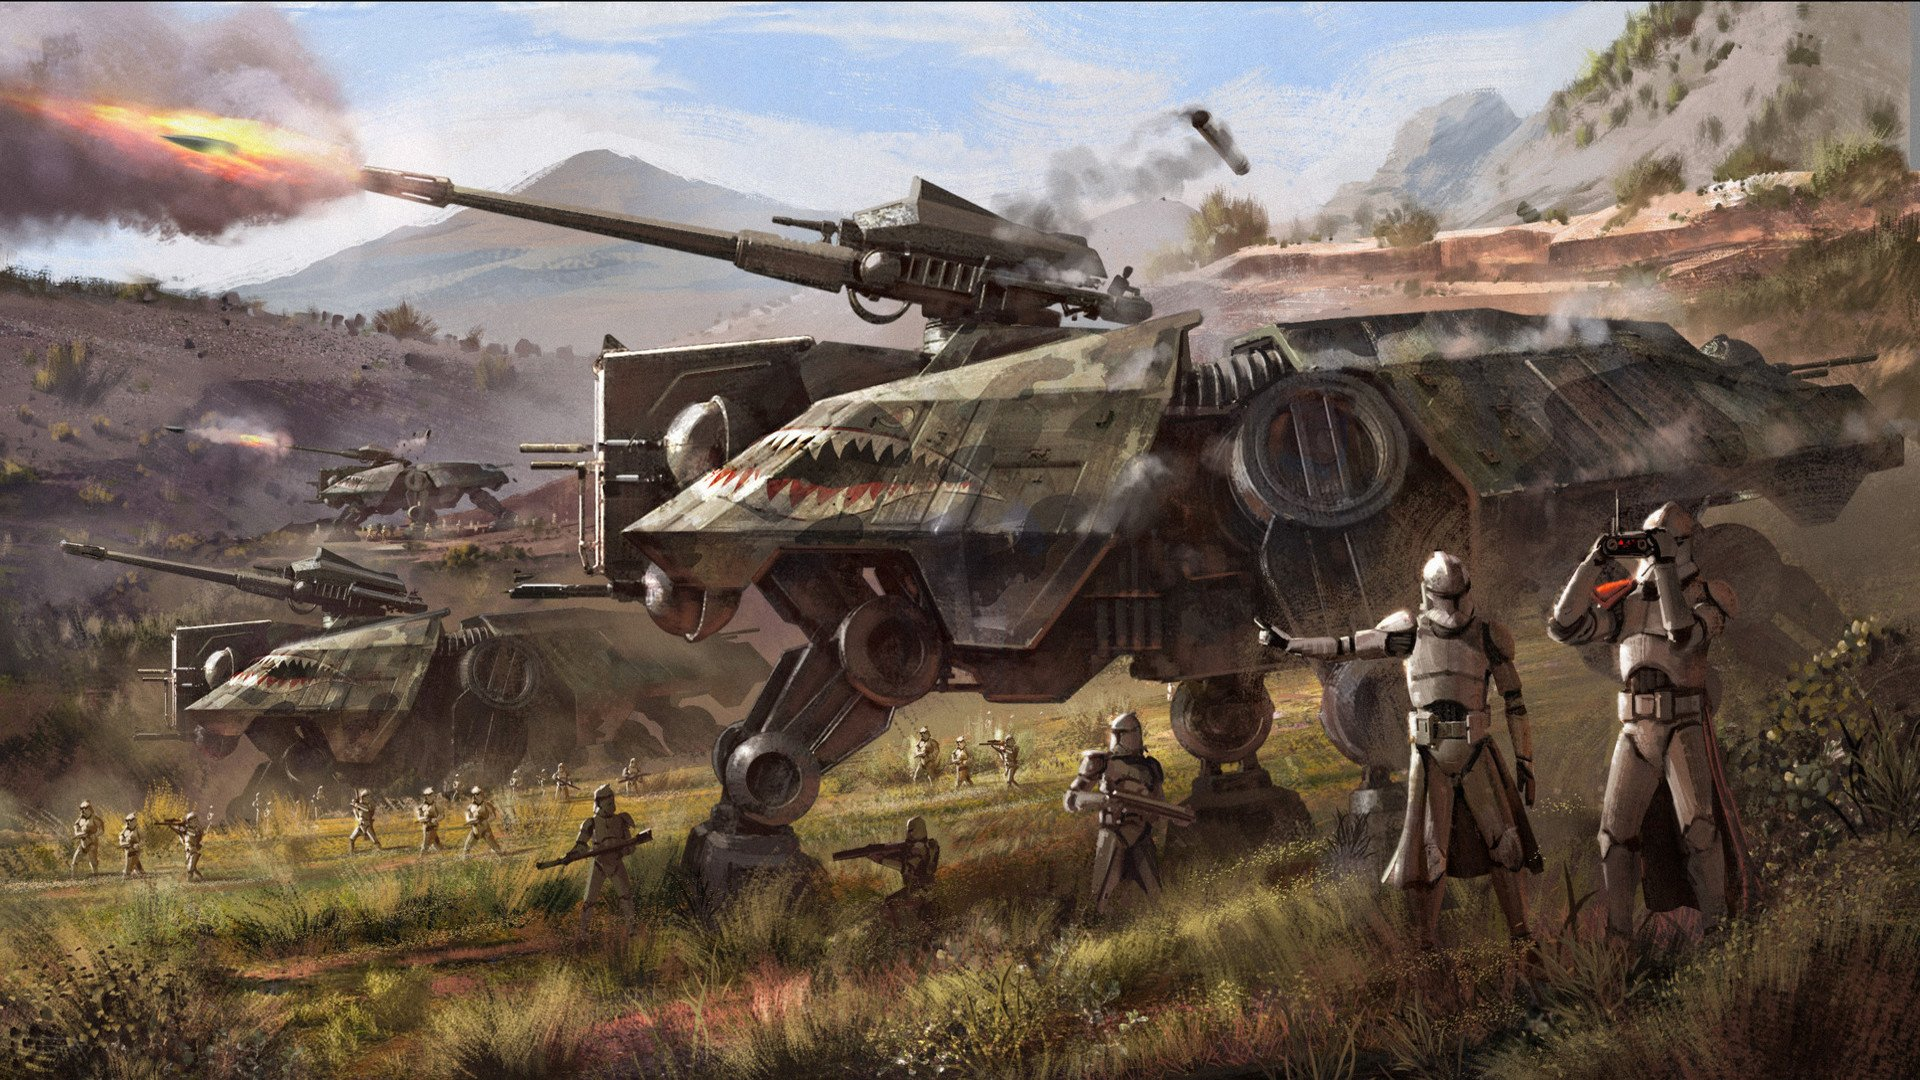 Heavy Artillery At Te Hd Wallpaper Background Image 1920x1080 Id 1033111 Wallpaper Abyss